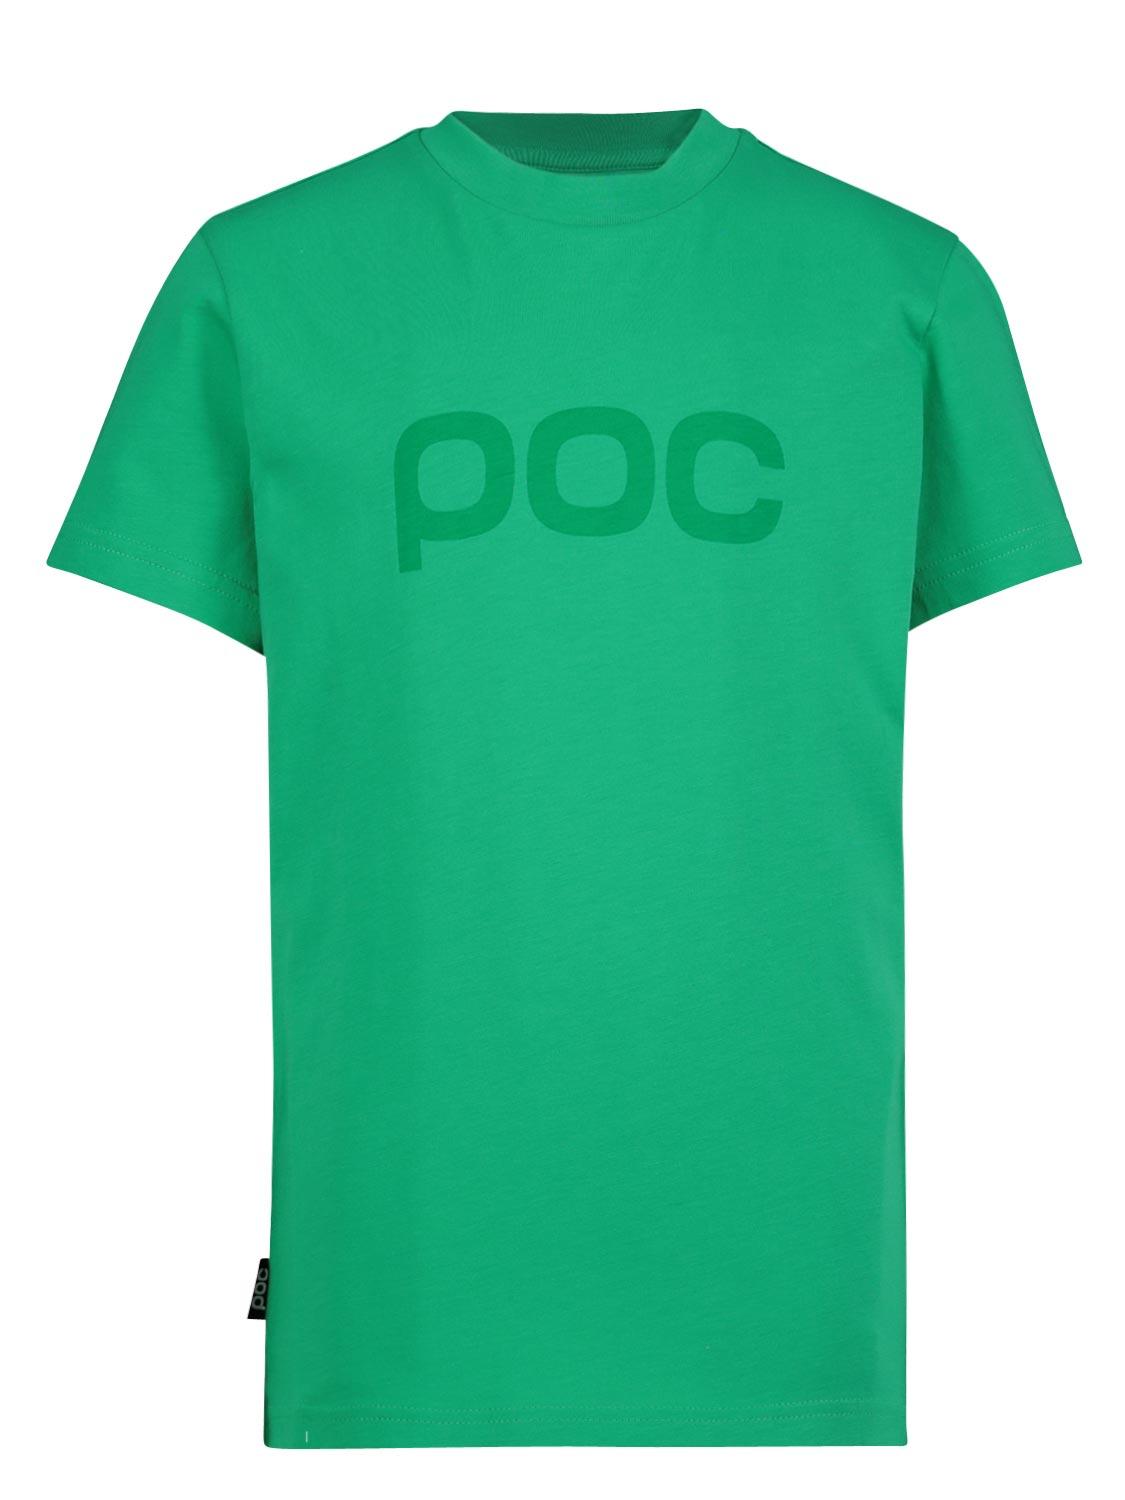 Poc Kids T-shirt For For Boys And For Girls In Green